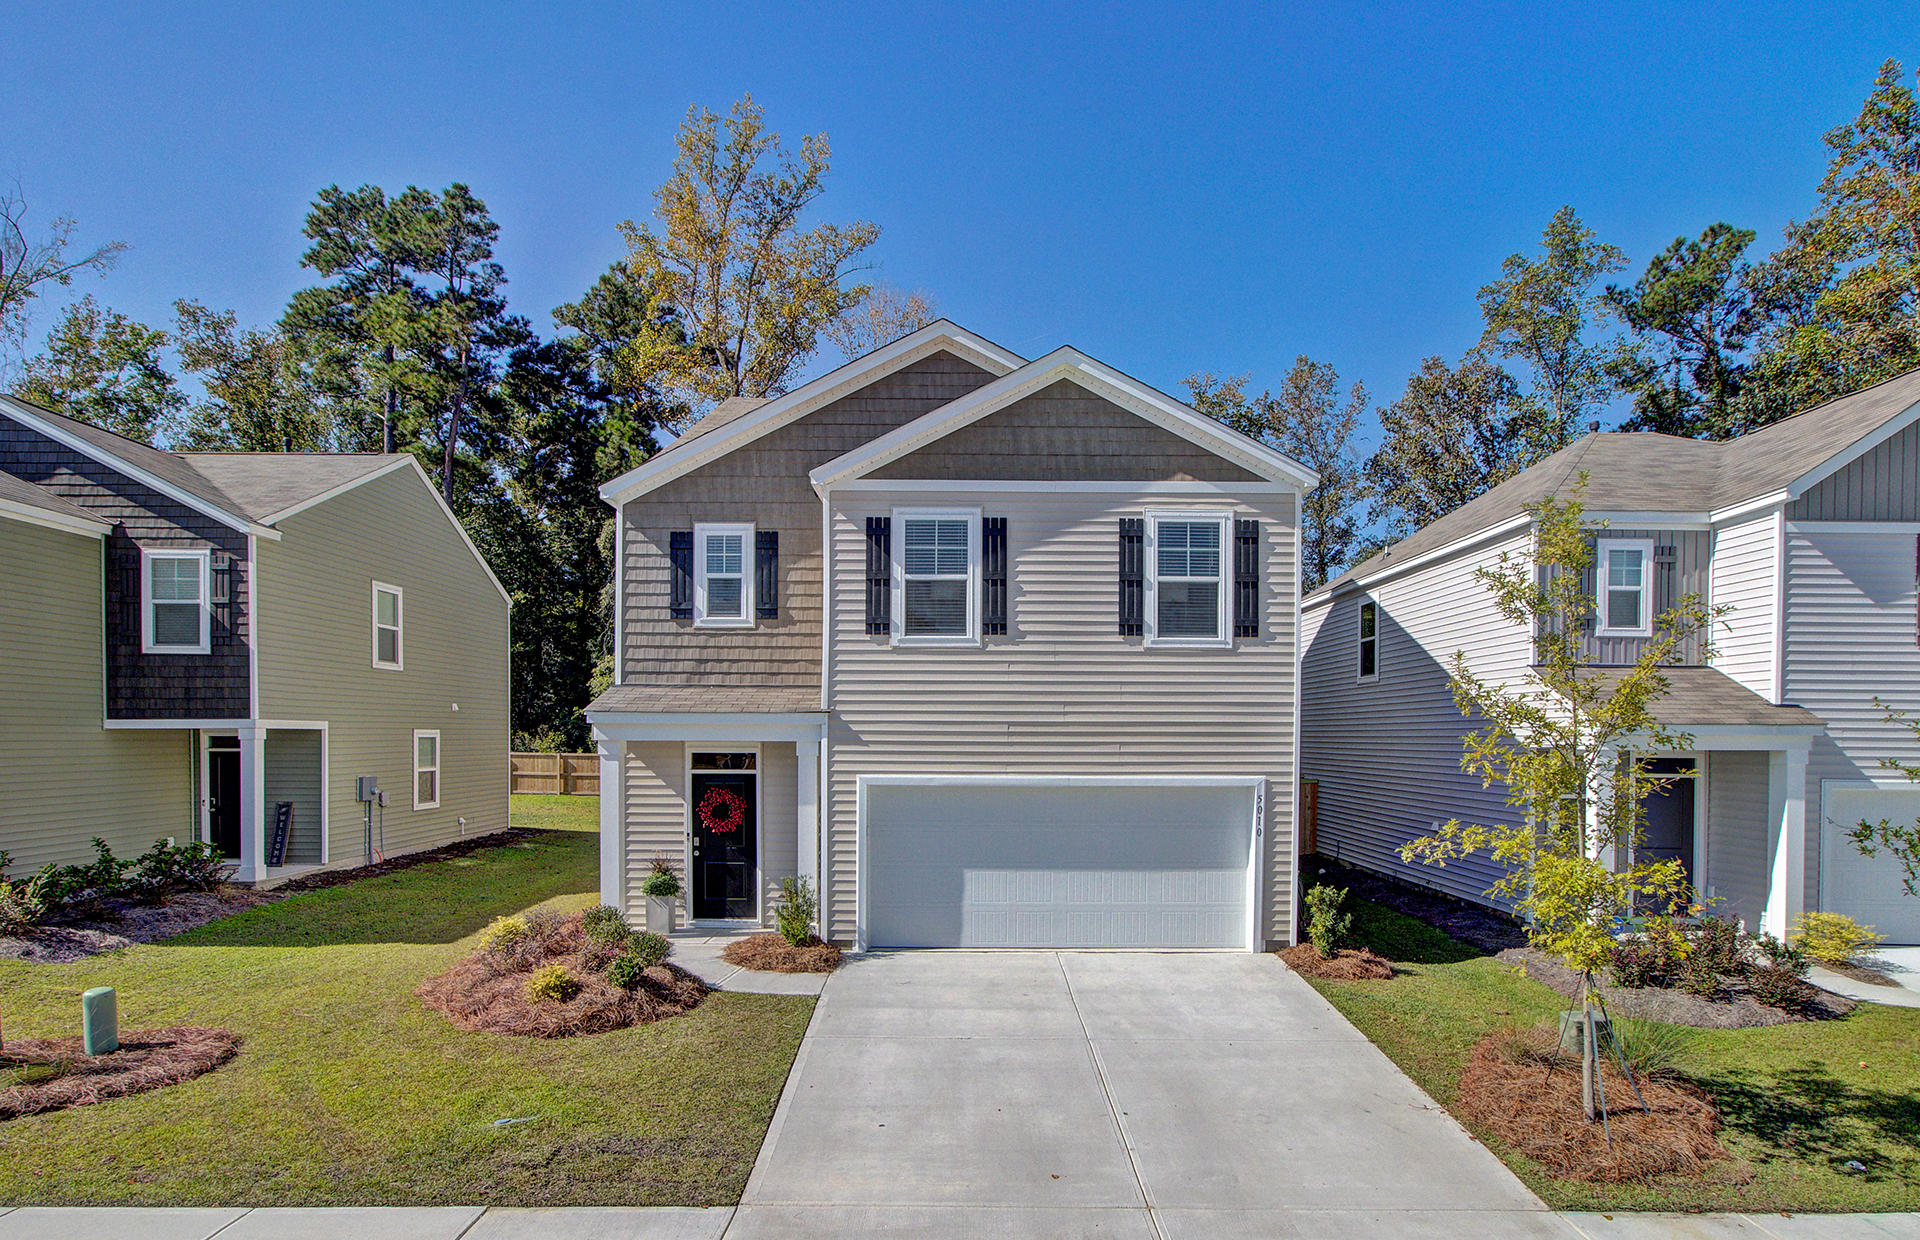 5010 Winnowing Way Ladson, SC 29456